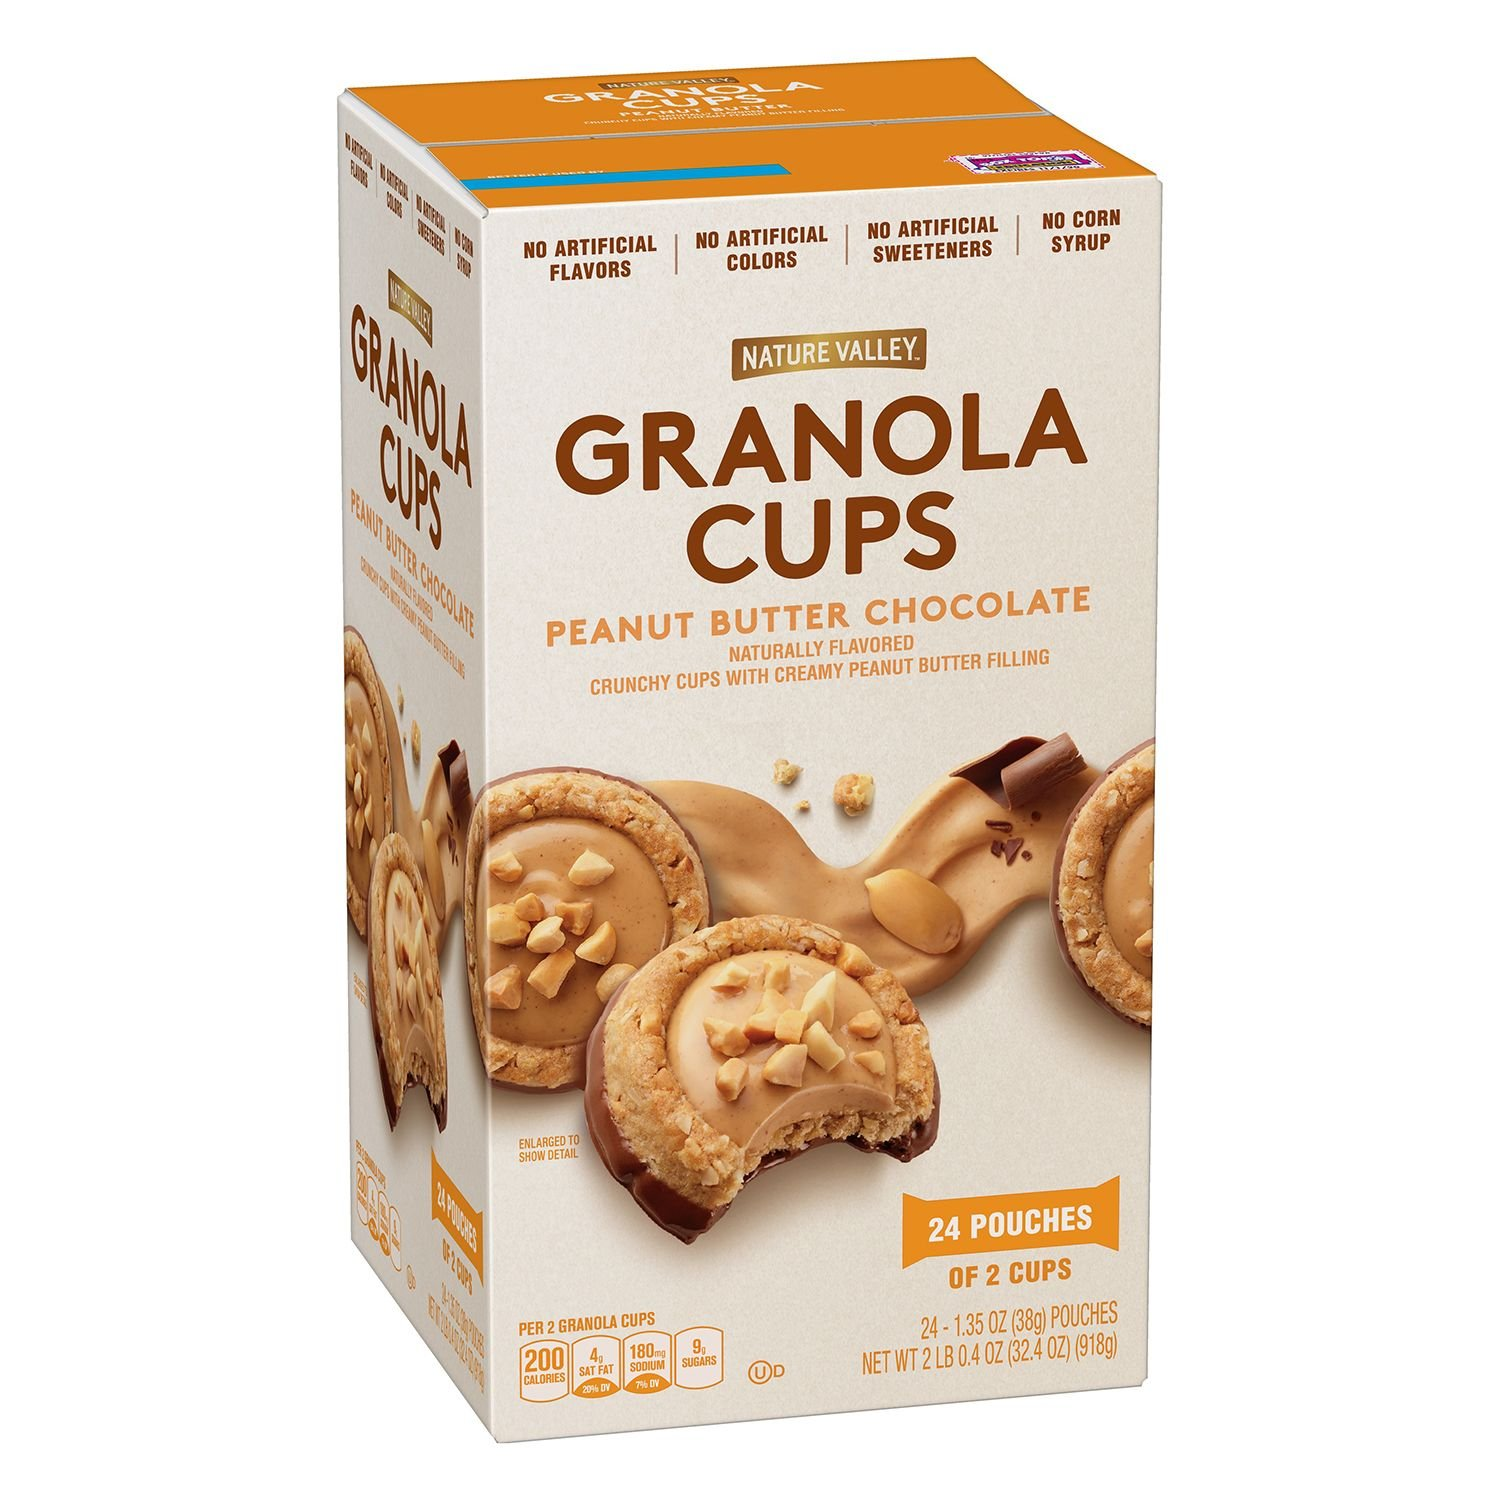 Nature Valley Granola Cups - Peanut Butter Chocolate Net wt 32.04 OZ (24 pouches of 2 cups)